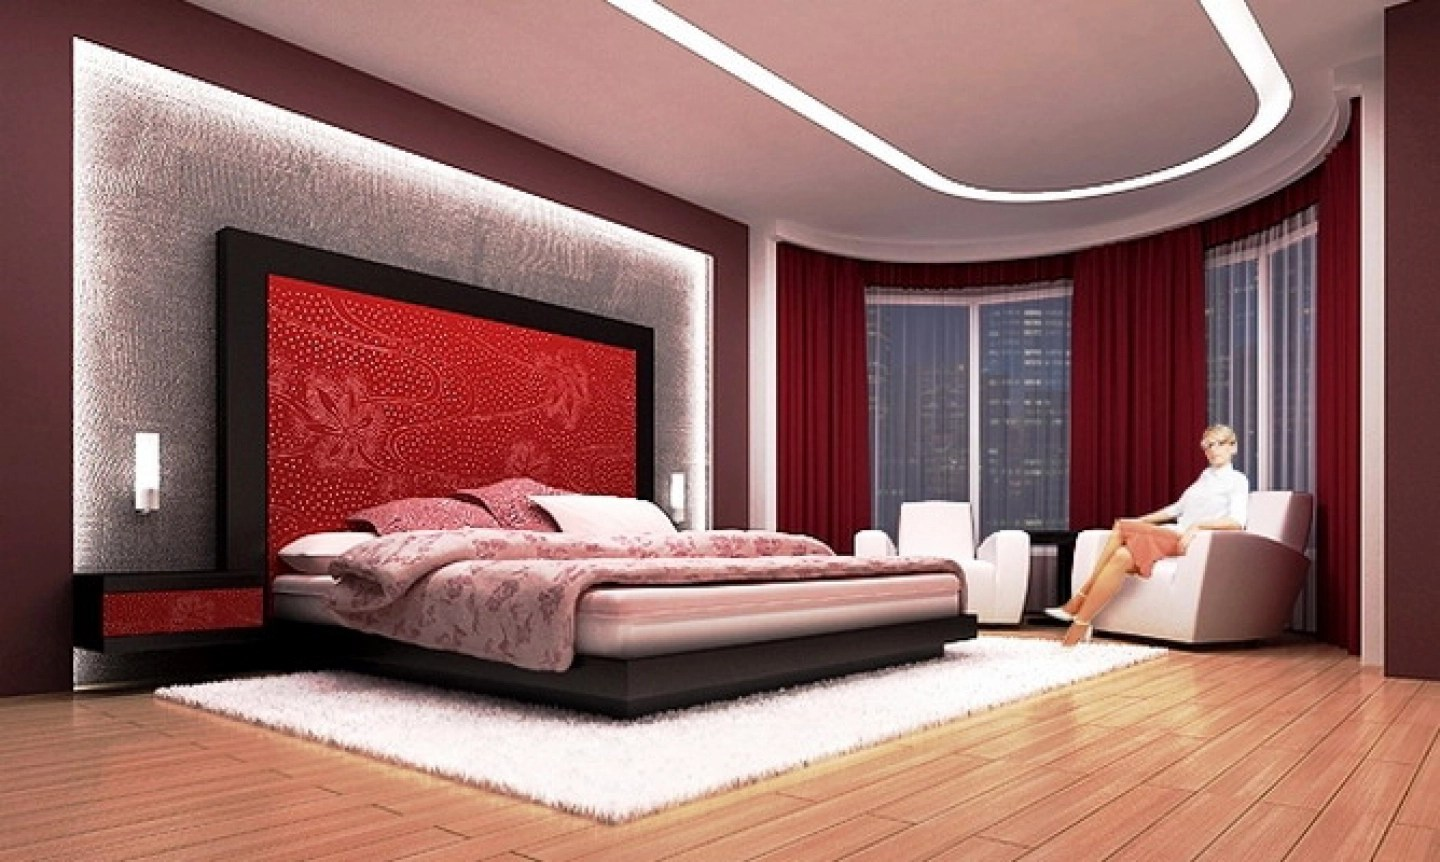 25 Cool Bedroom Designs Collection - The WoW Style on Best Master Bedroom Designs  id=13421